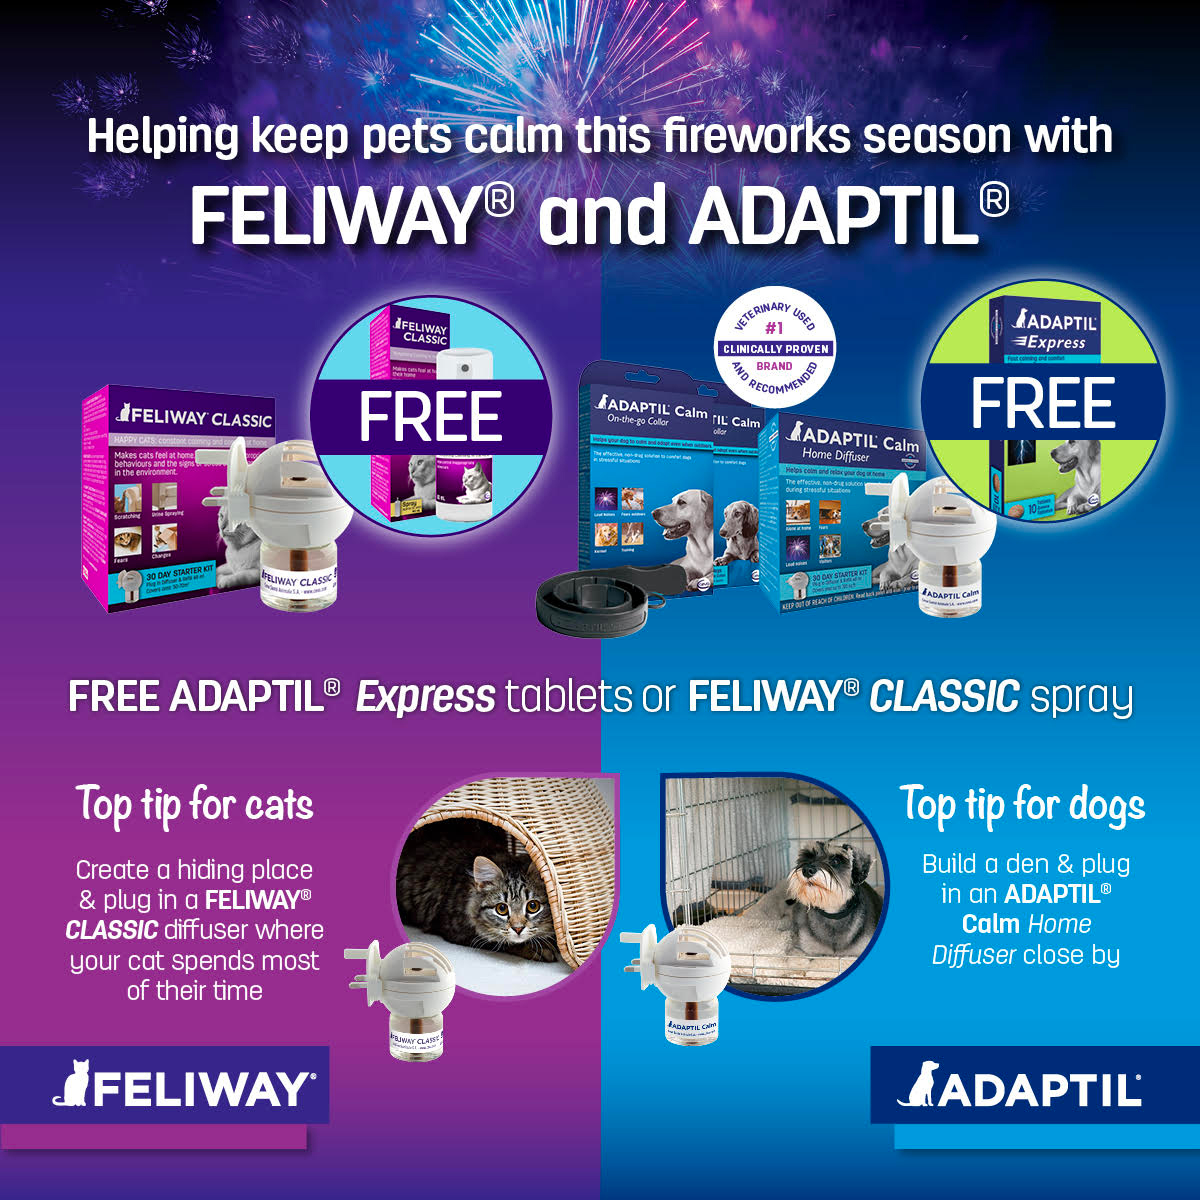 Help keep them calm with Adaptil and Feliway